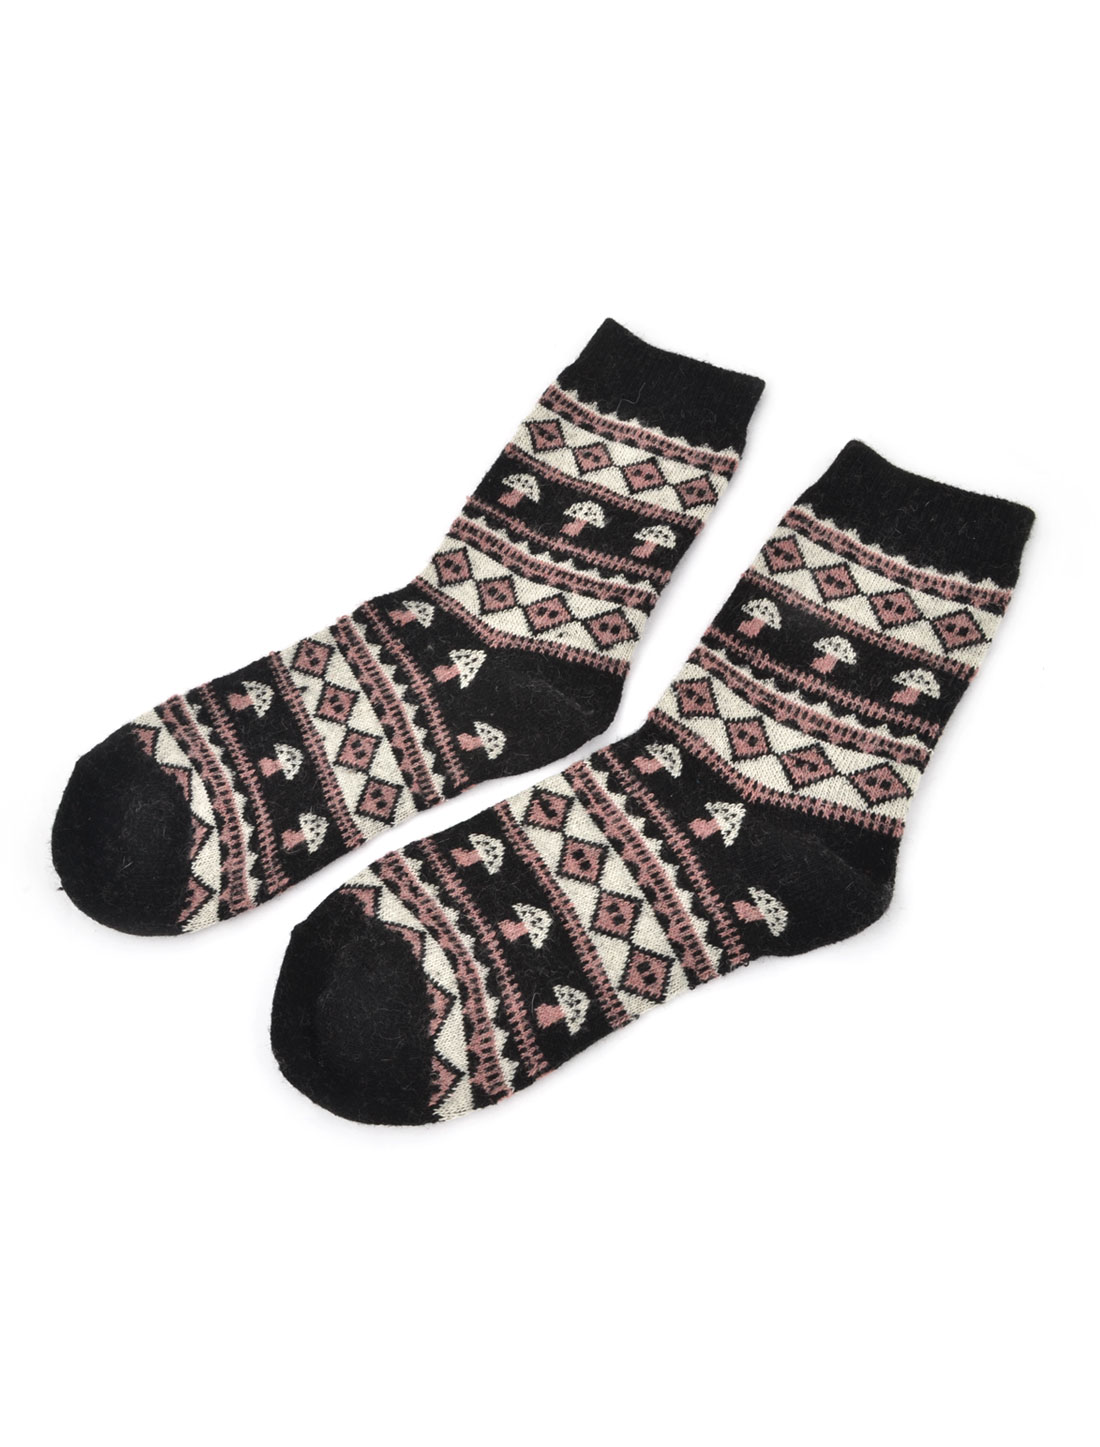 Ladies Stretchy Ribbed Cuff Tribal Print Warm Wool Ankle Socks Black White Pair